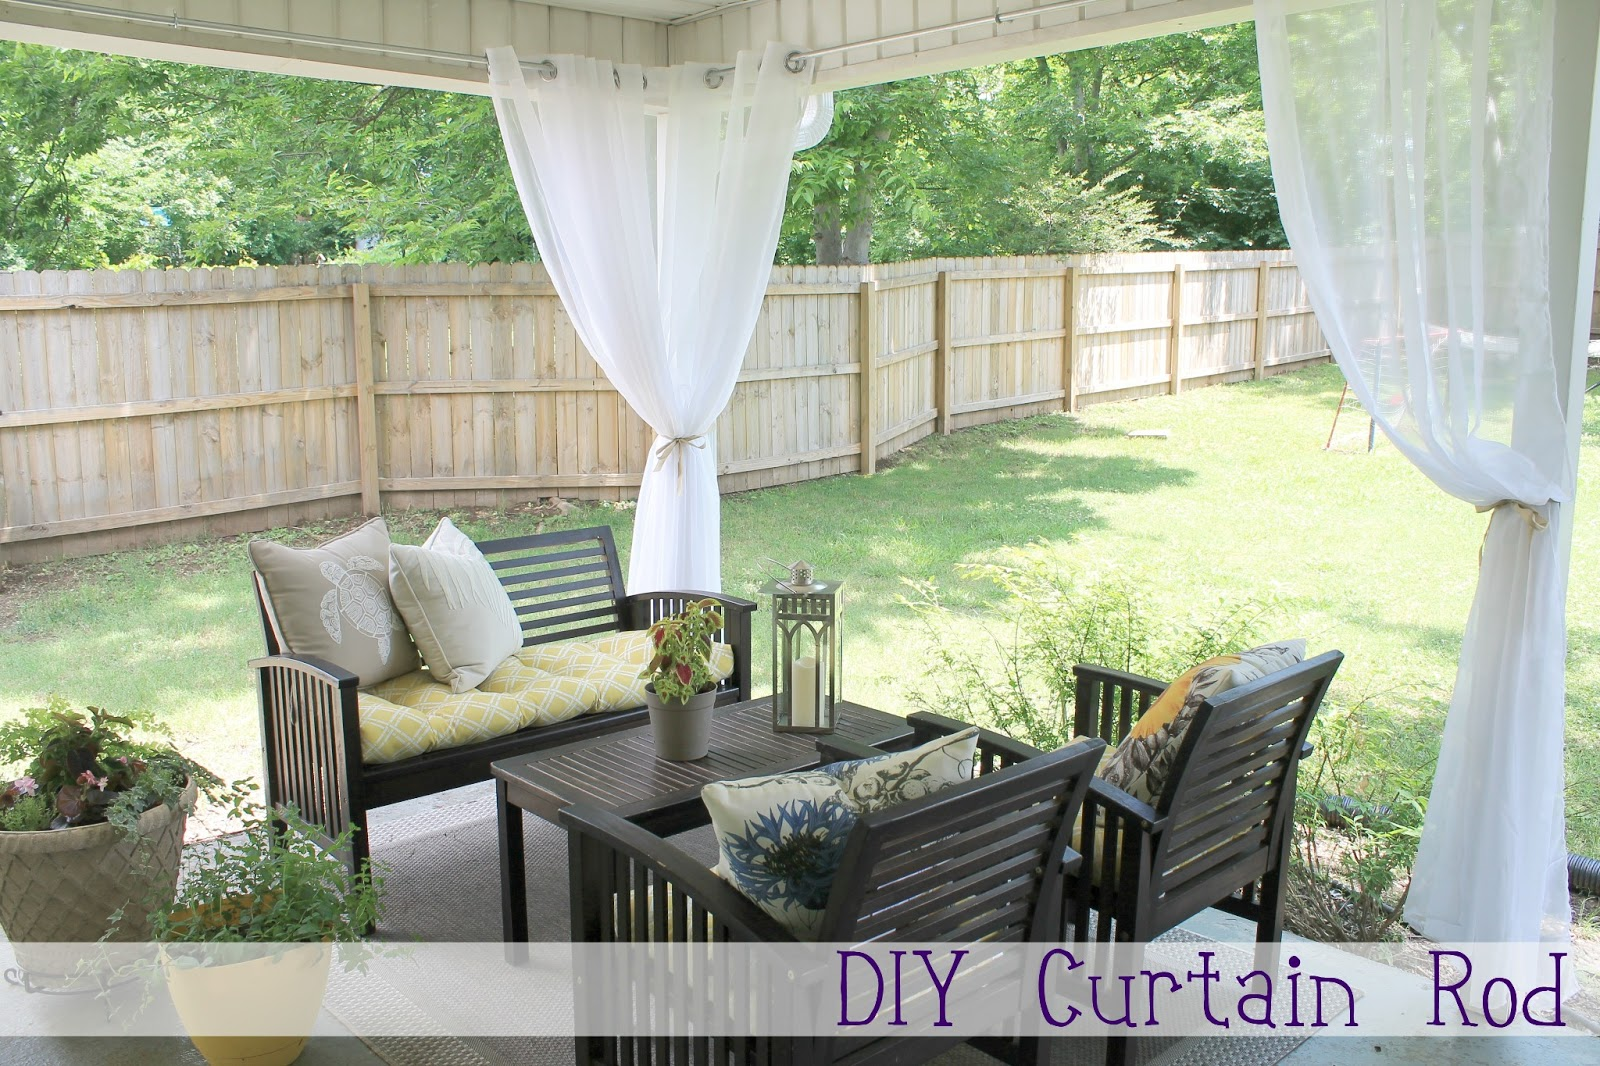 screened porch sheer curtains. Porch Curtain Diy Rod Chippasunshine Screened Sheer Curtains E